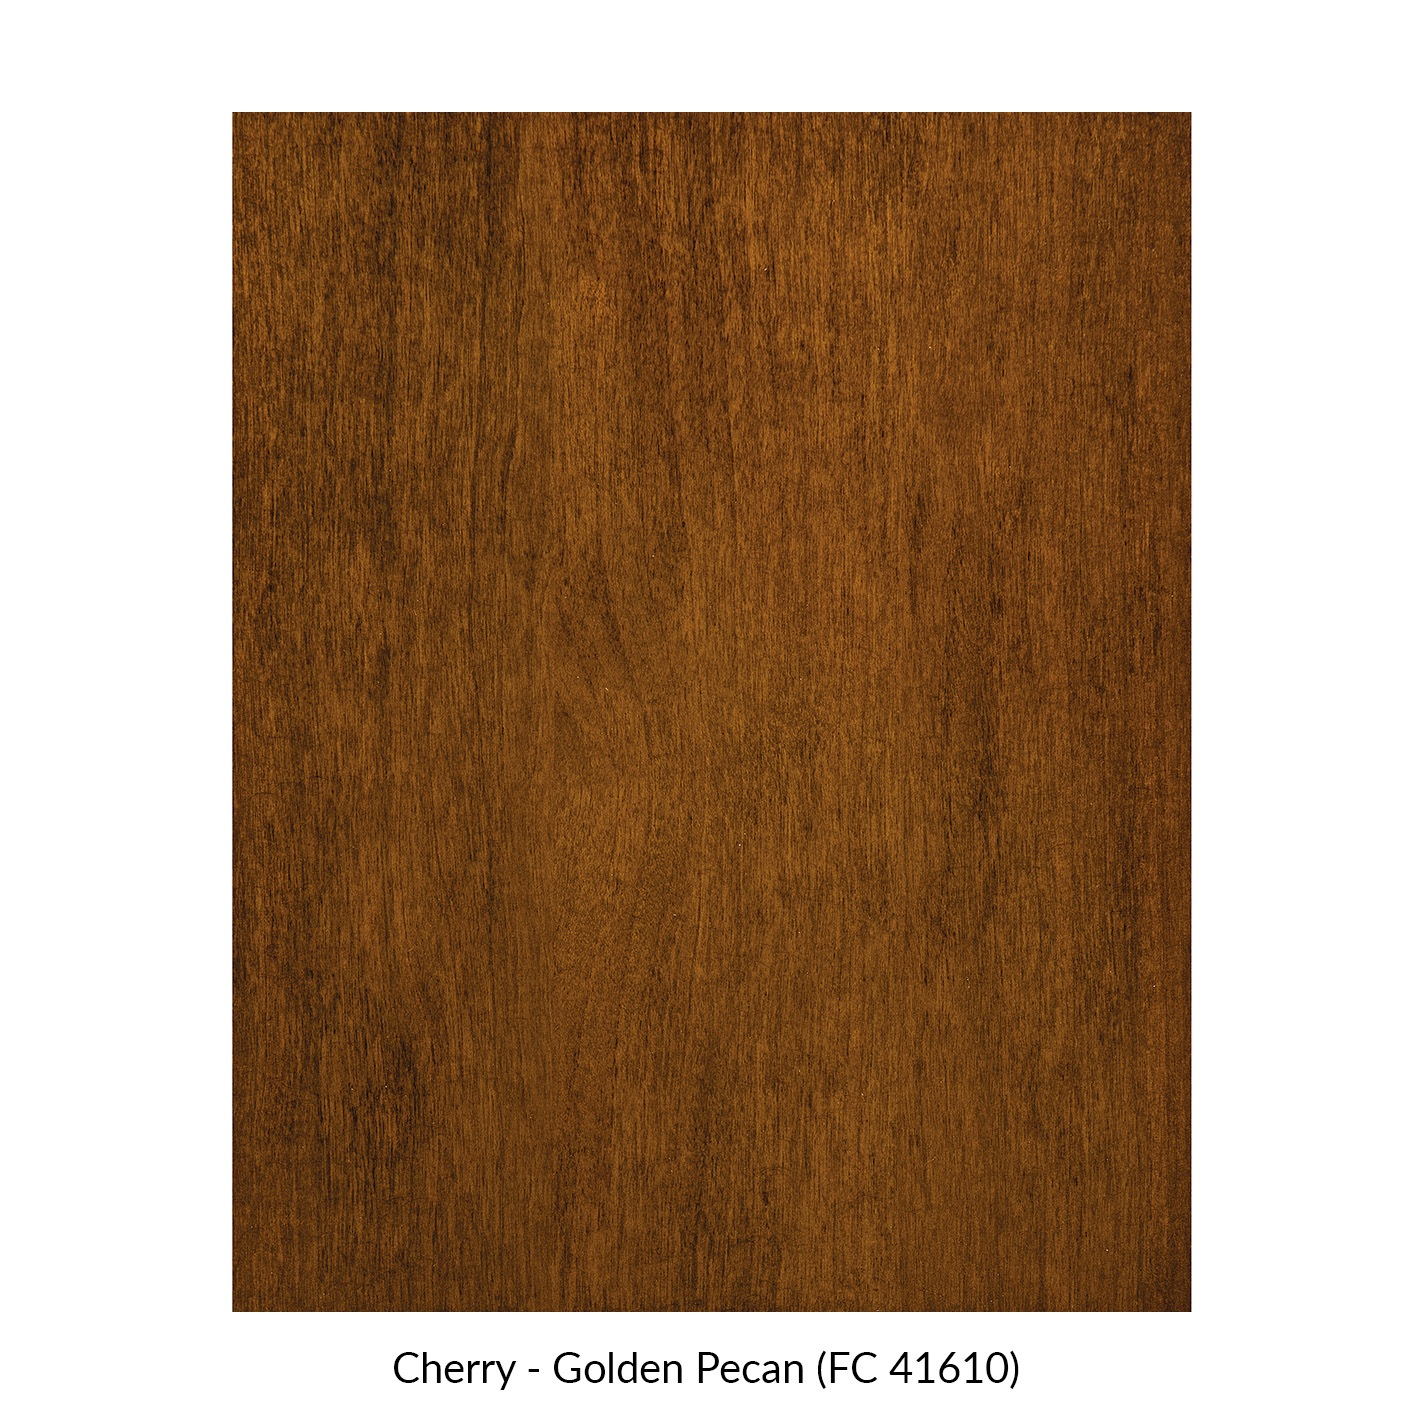 spectrum-cherry-golden-pecan-fc-41610.jpg